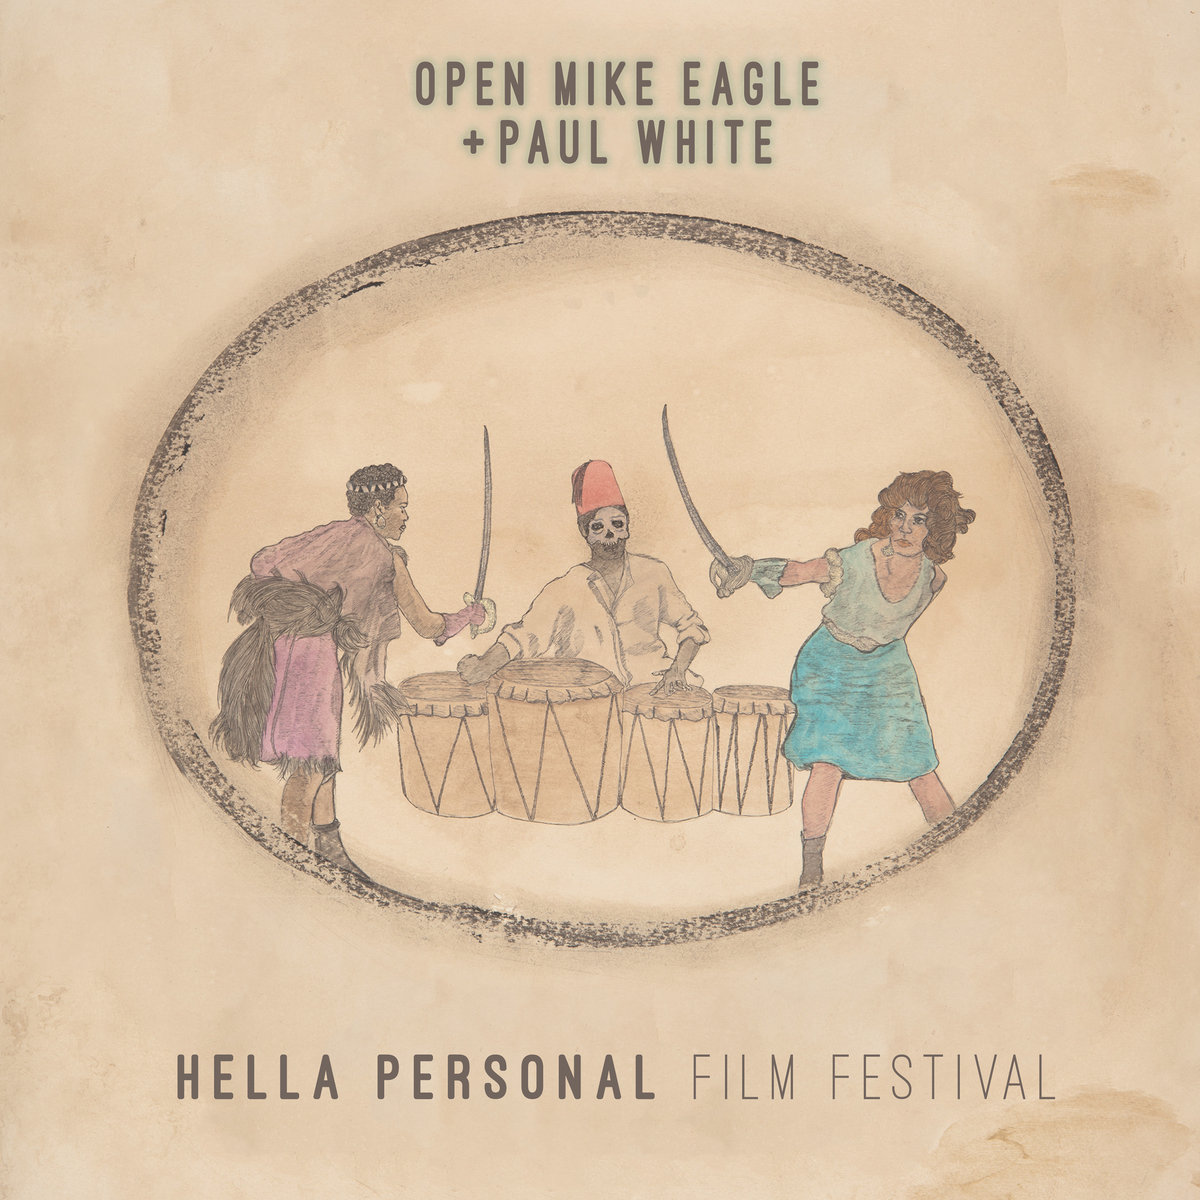 Hella Personal Film Festival is a Standout Work in Both Open Mike Eagle and Paul White's Careers